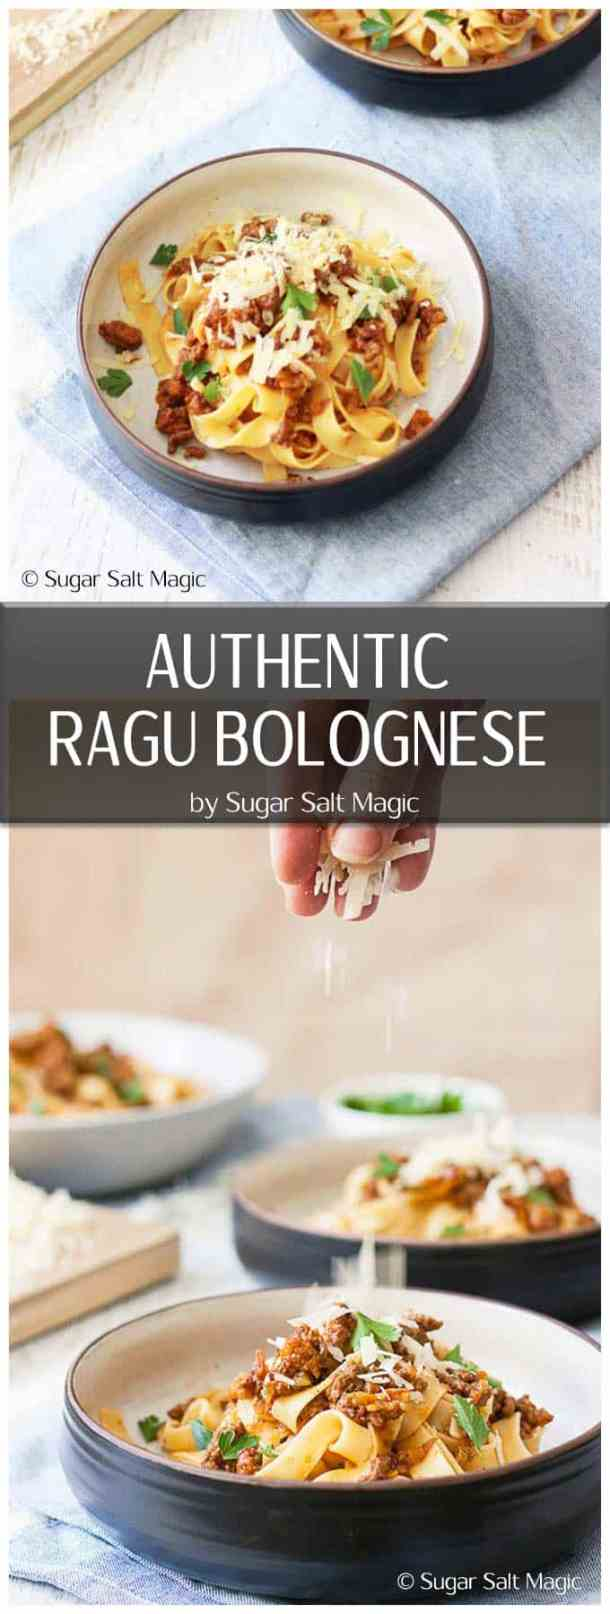 Ragu Bolognese with Tagliatelle by Sugar Salt Magic. An authentic Ragu Bolognese, like a comforting hug from an Italian nonna.